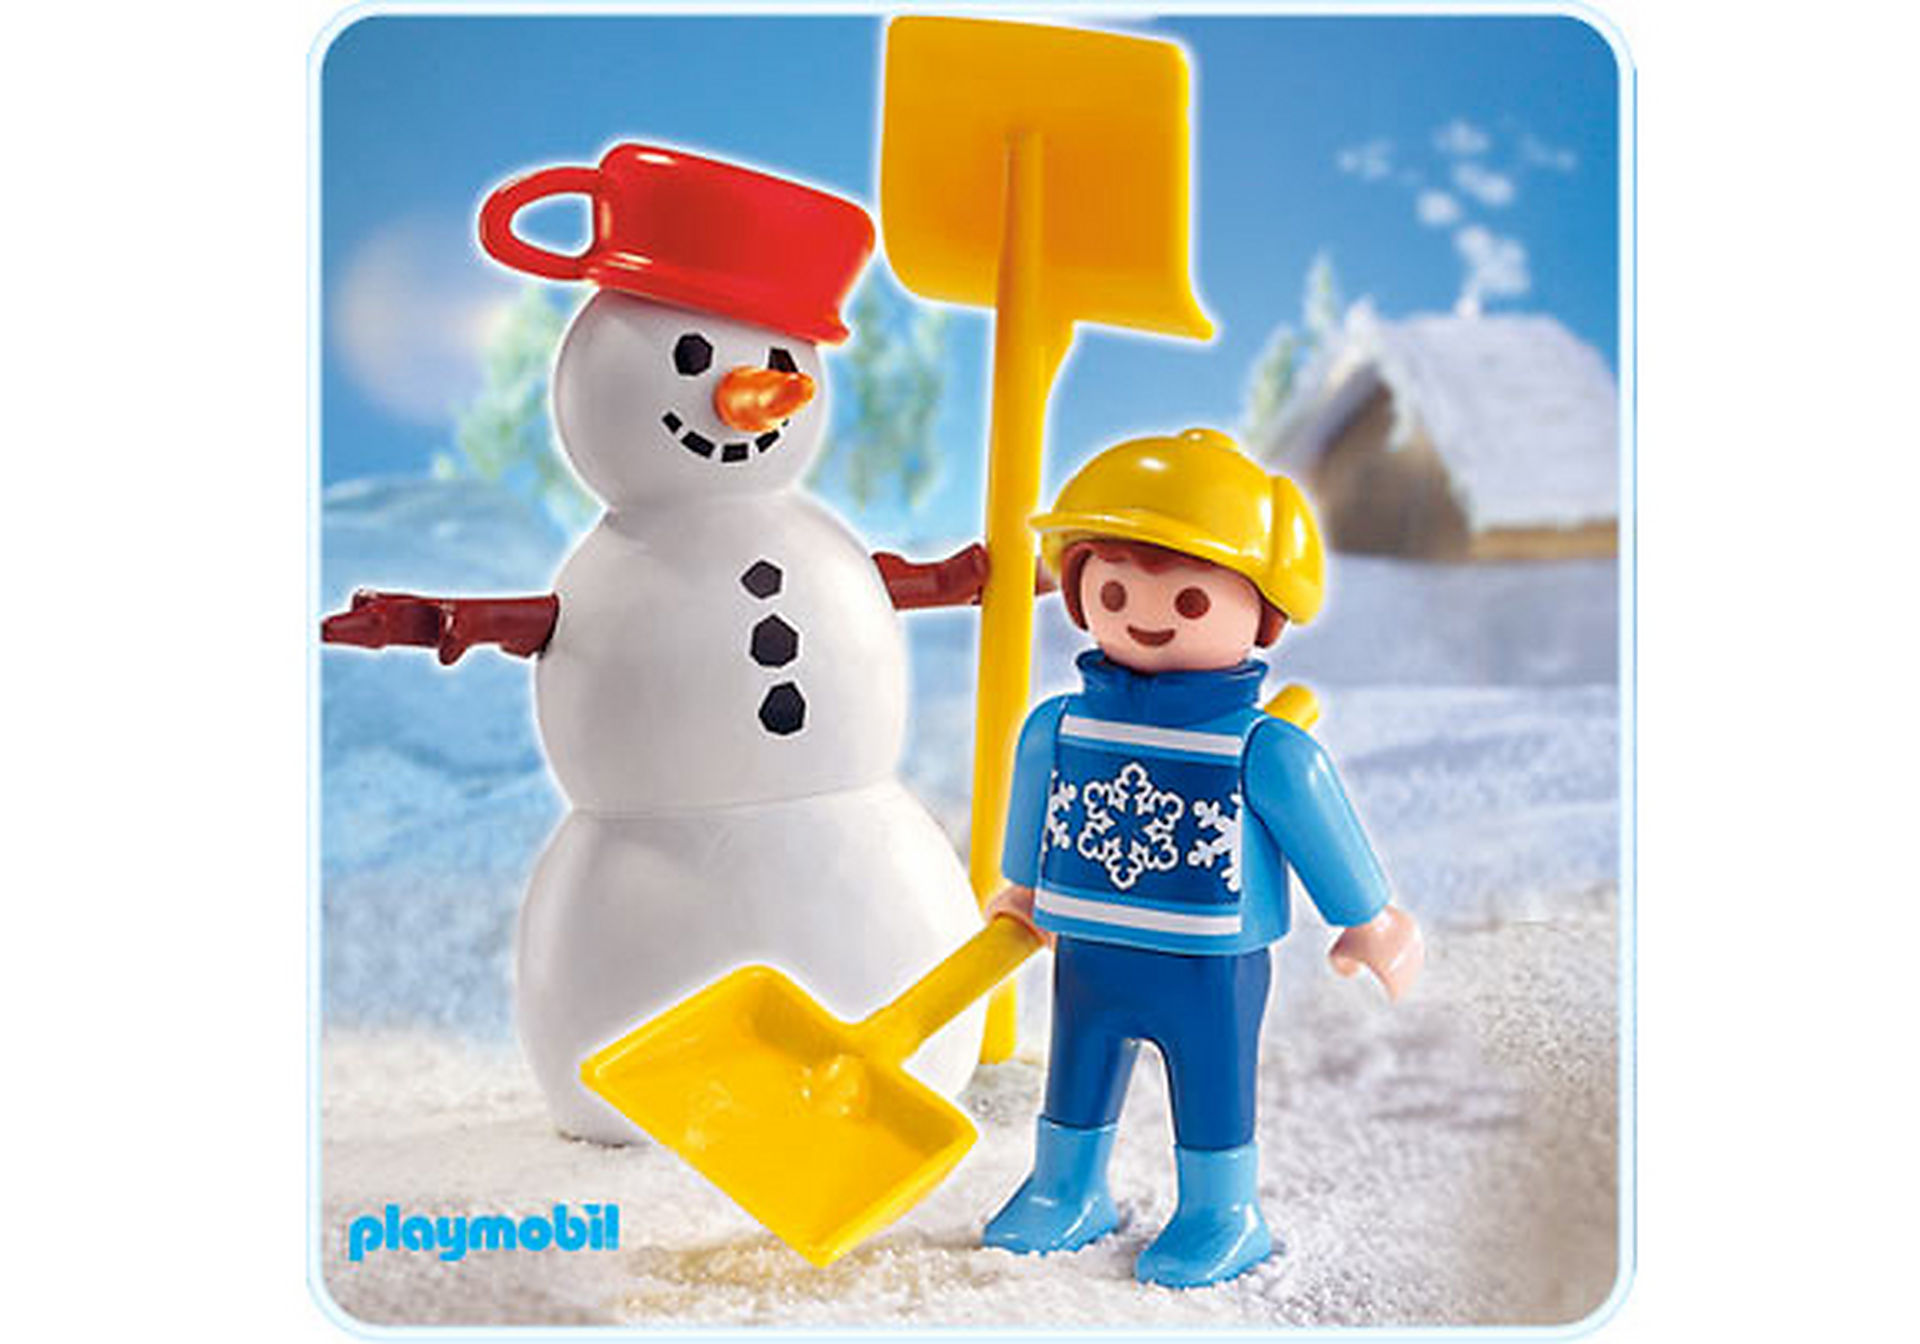 http://media.playmobil.com/i/playmobil/4680-A_product_detail/Junge mit Schneemann